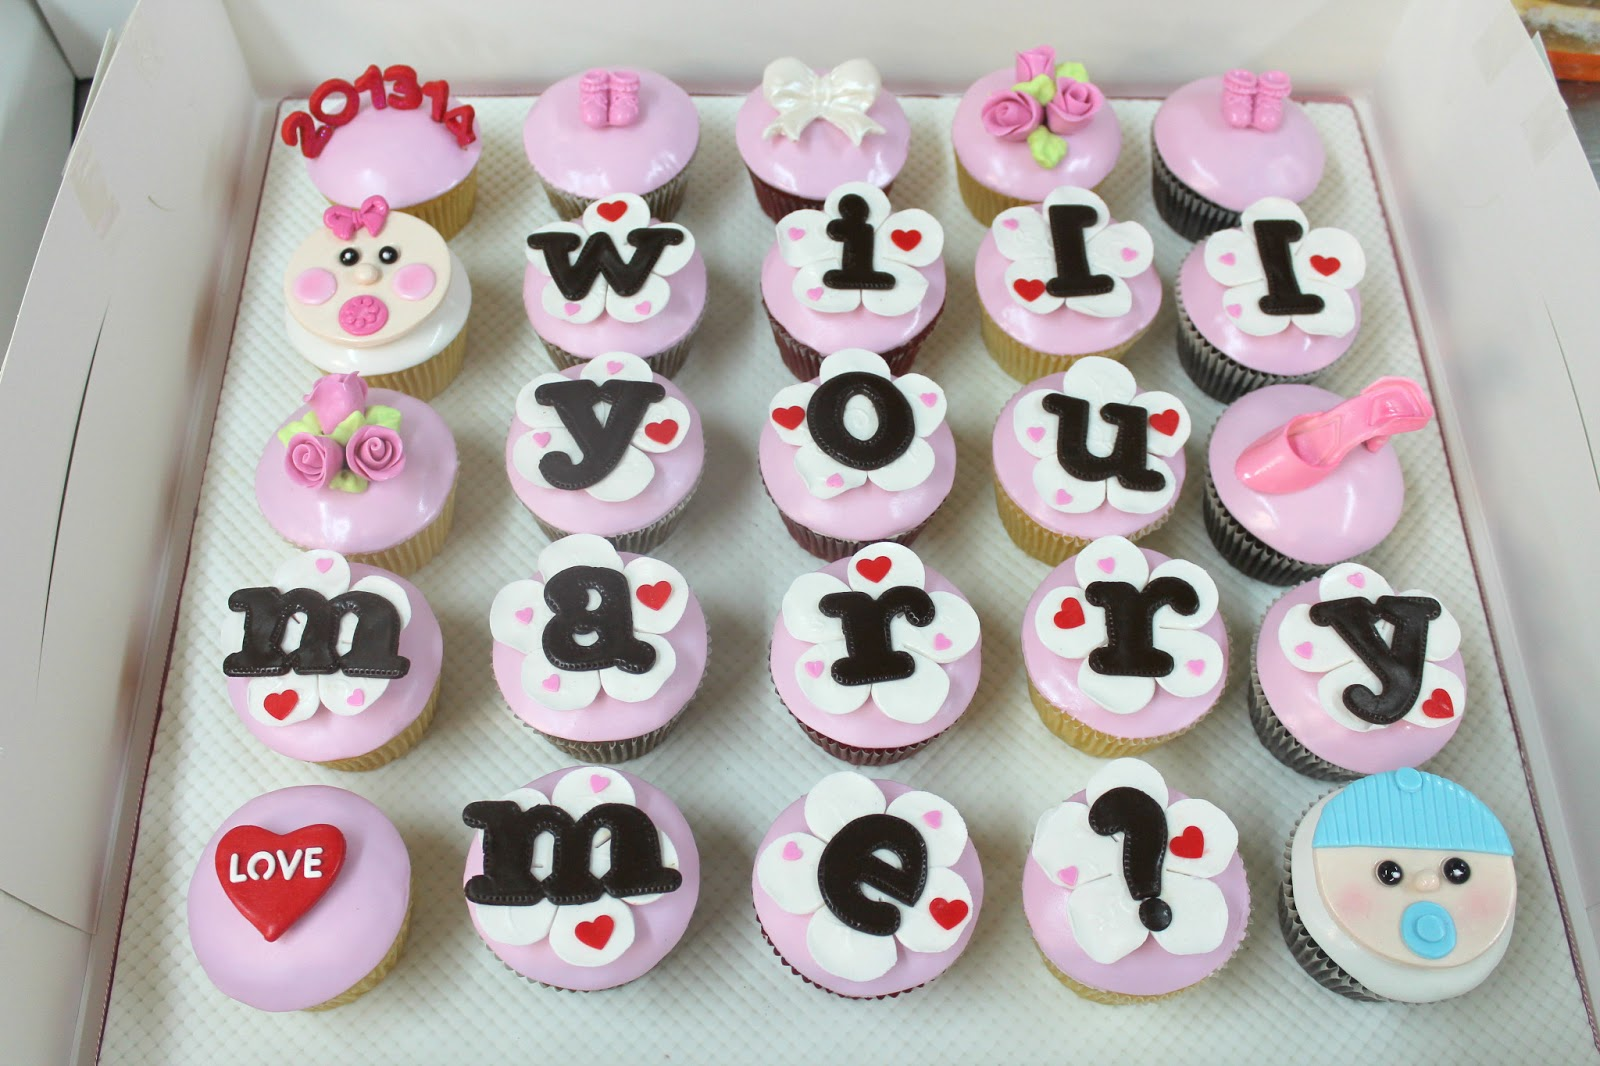 5 Up Cupcakes Will You Marry Me Photo Will You Marry Me Cute